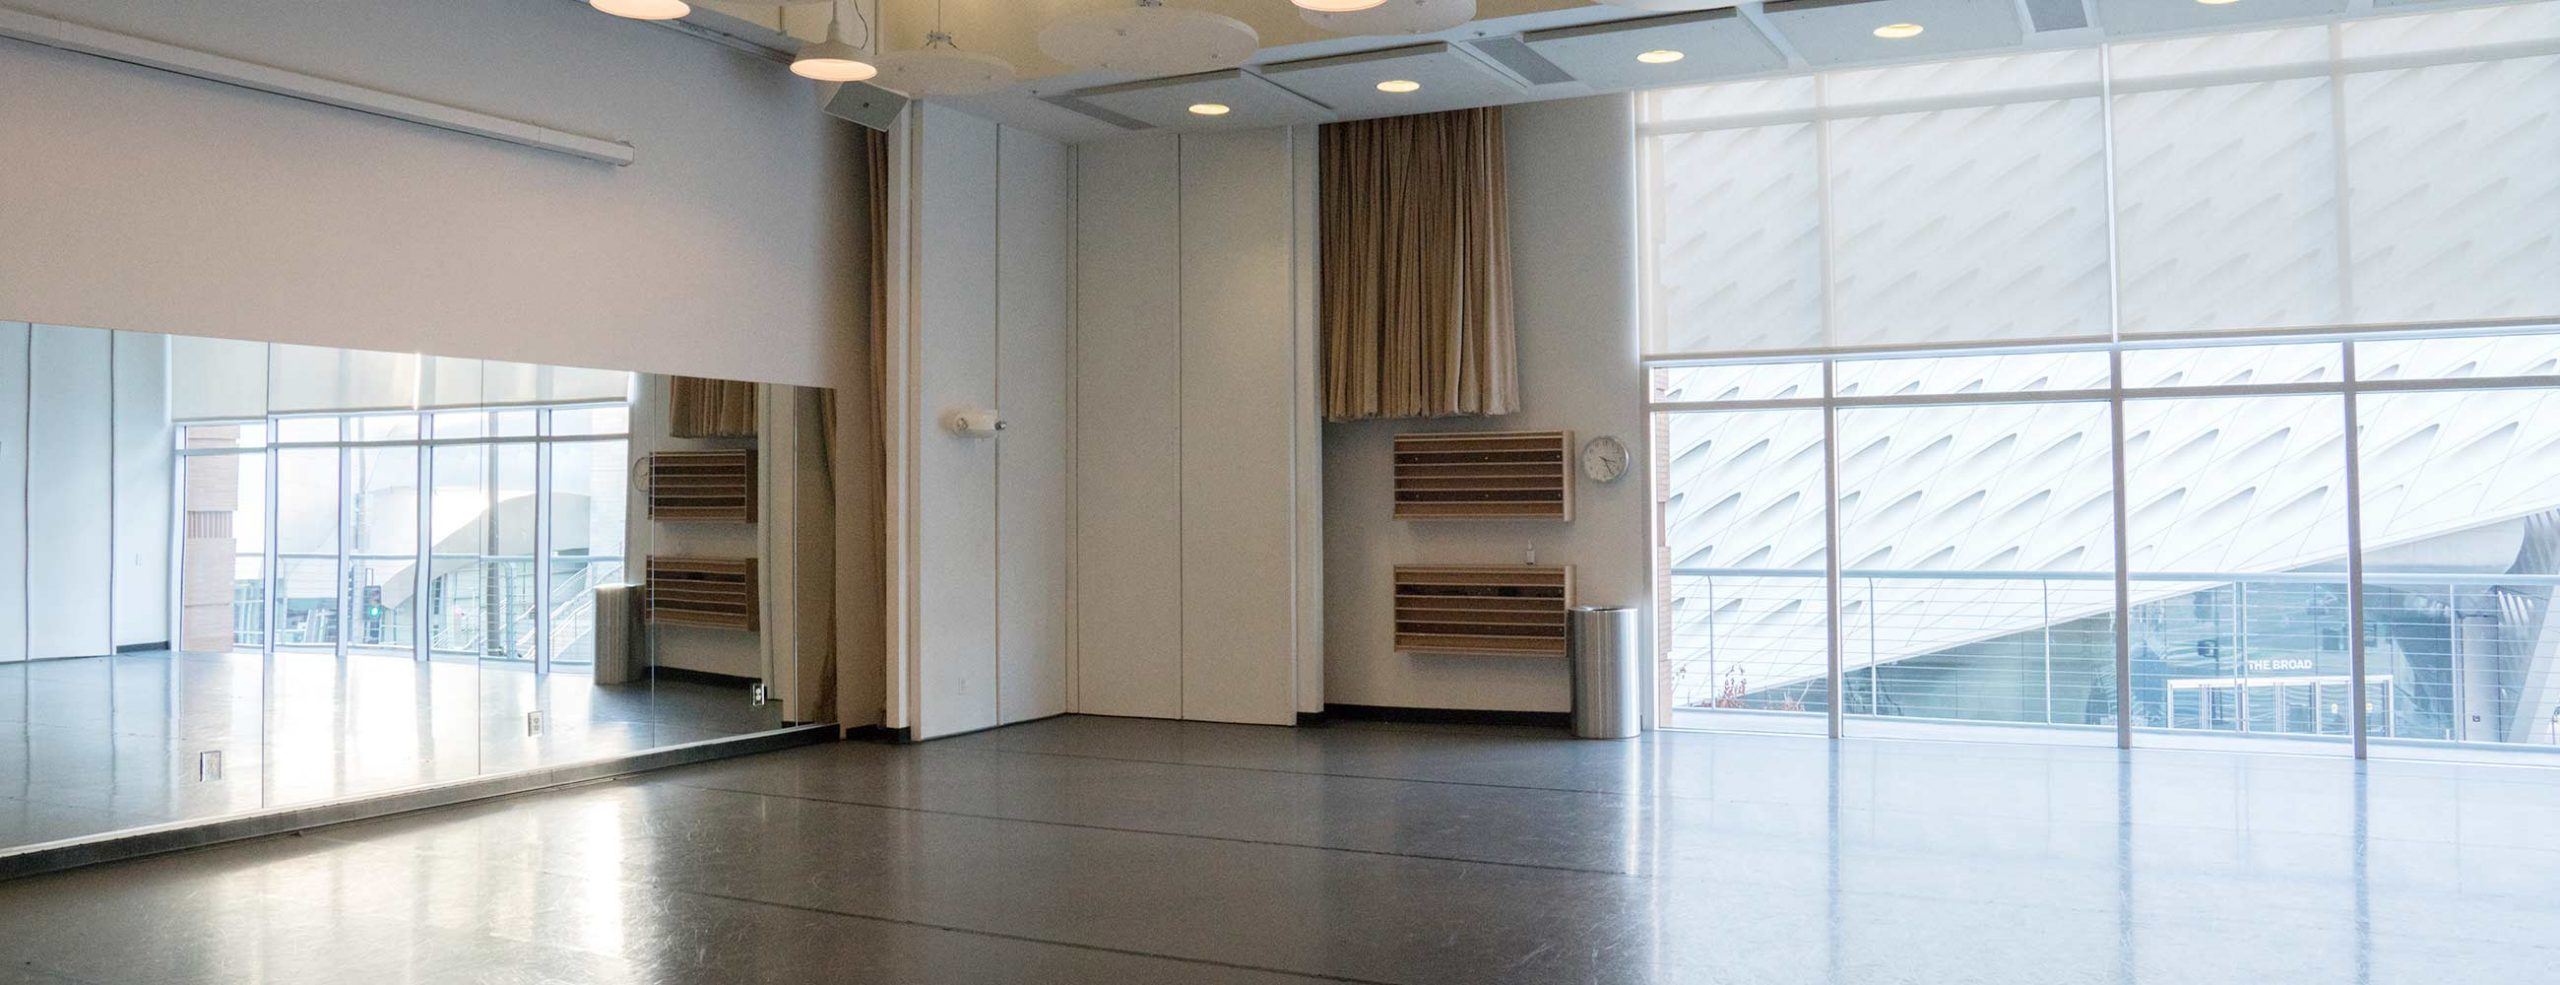 Empty dance studio with The Broad museum visible through window